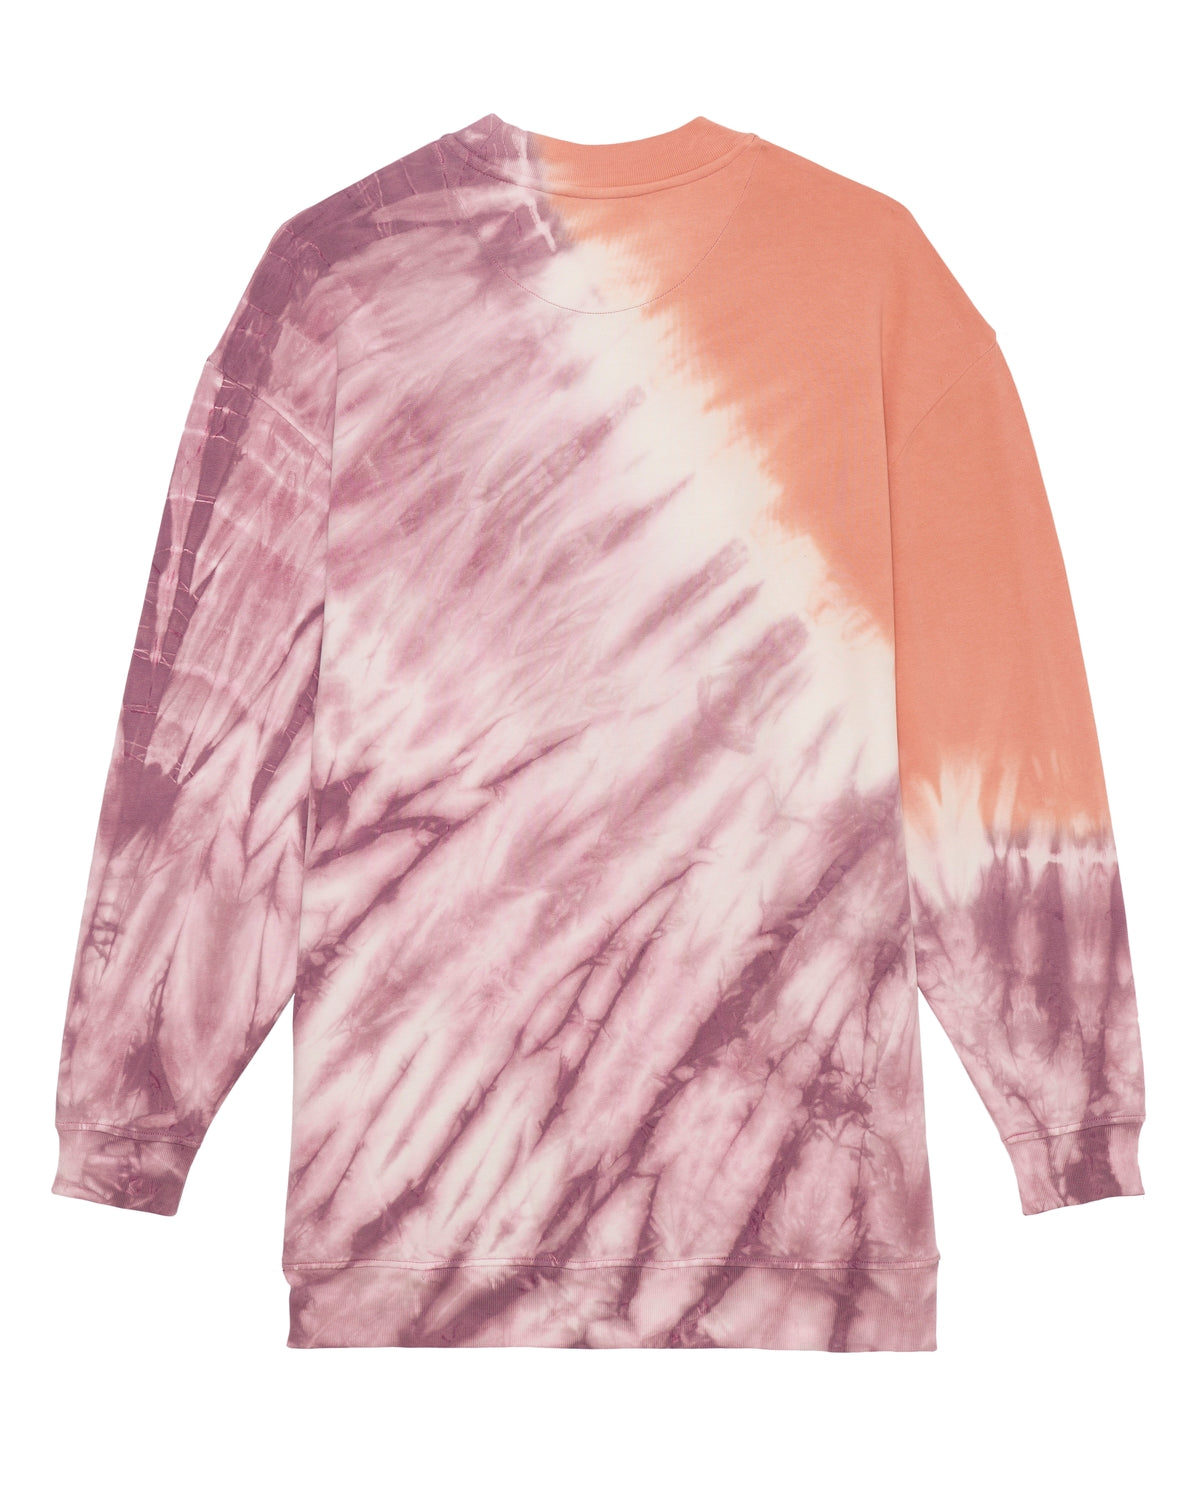 FIRER TIE AND DYE